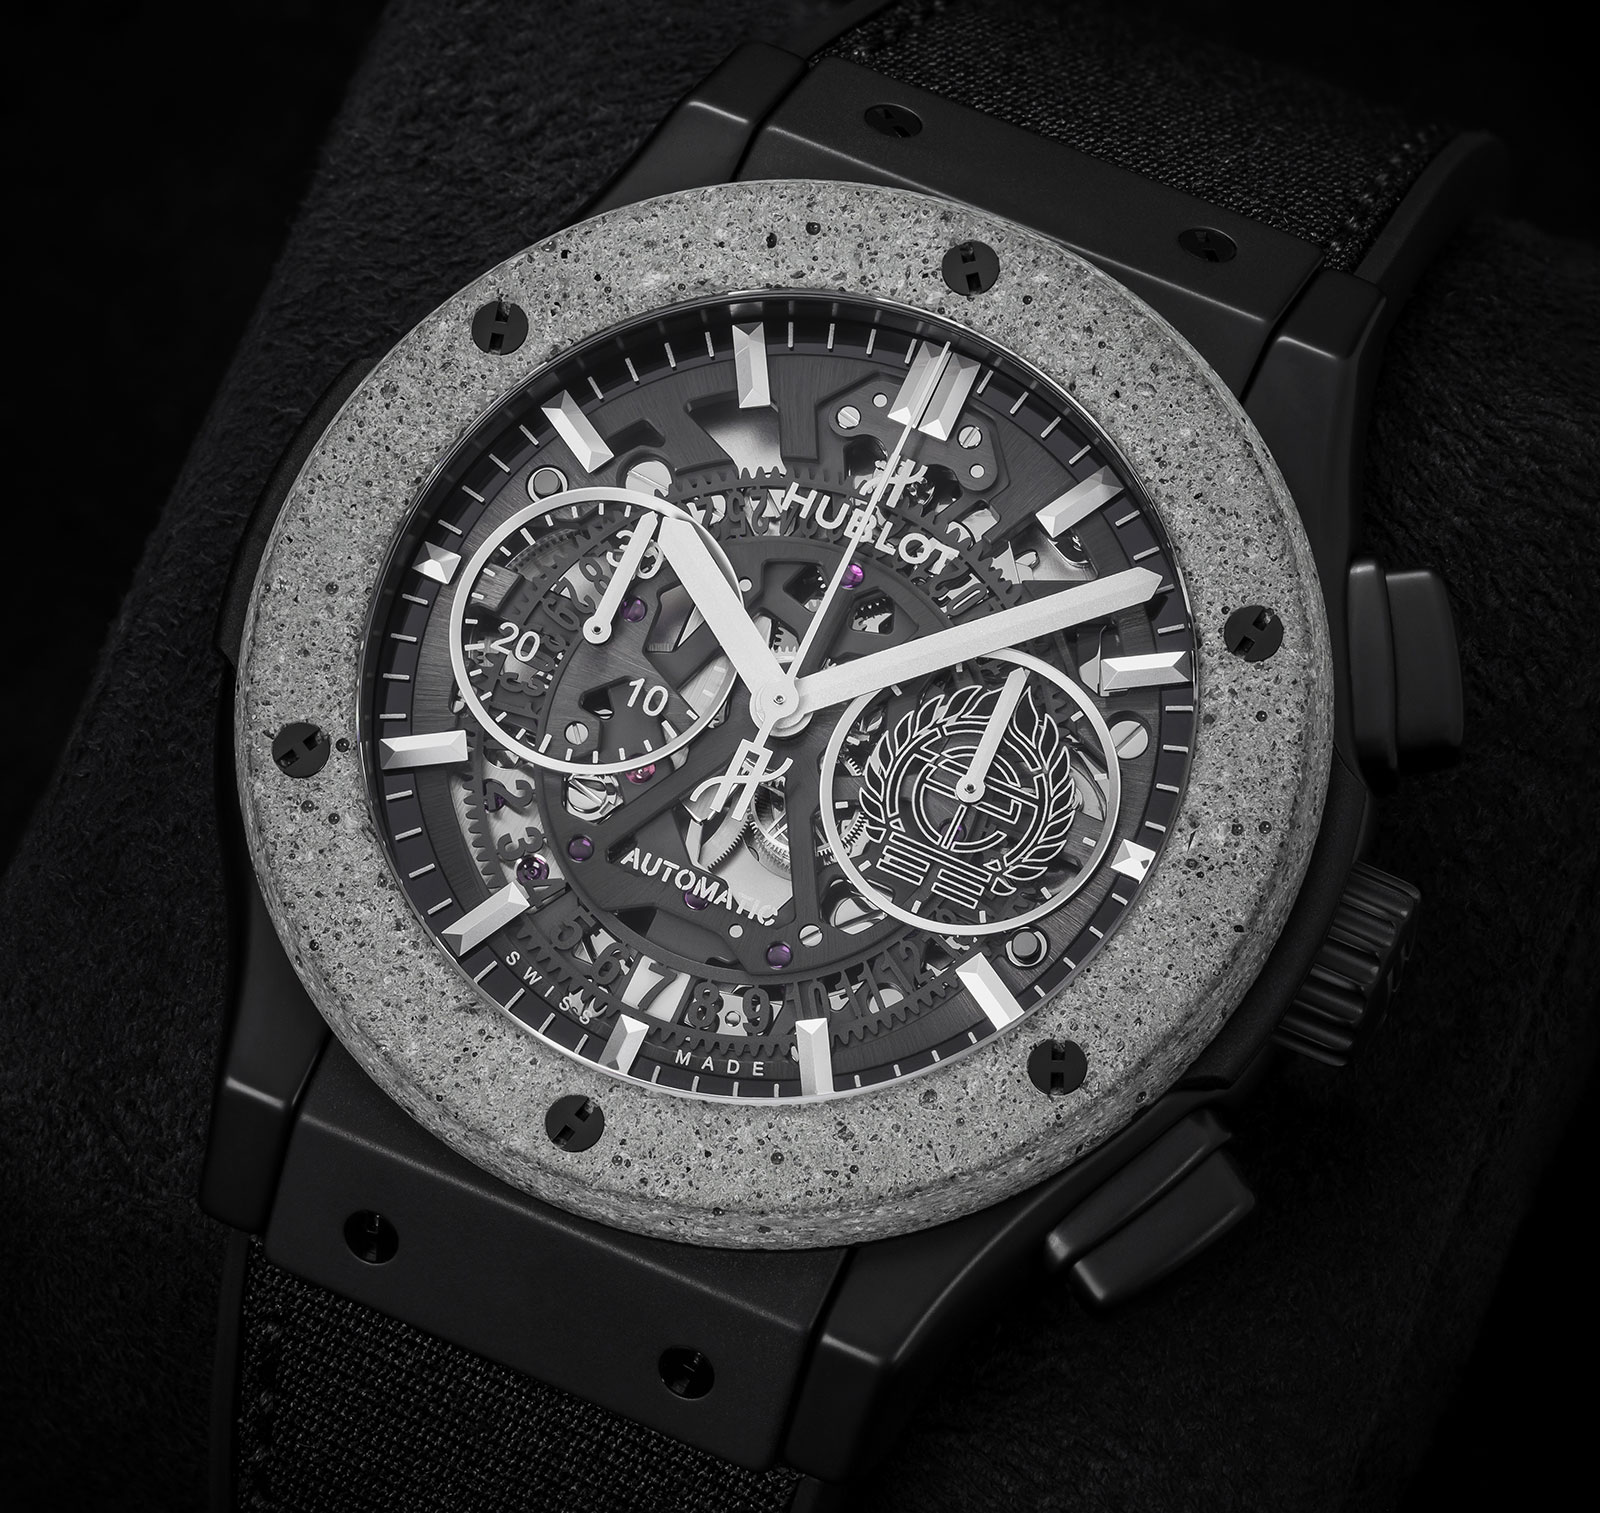 Hublot Classic Fusion Aerofusion Chronograph Concrete Jungle 1